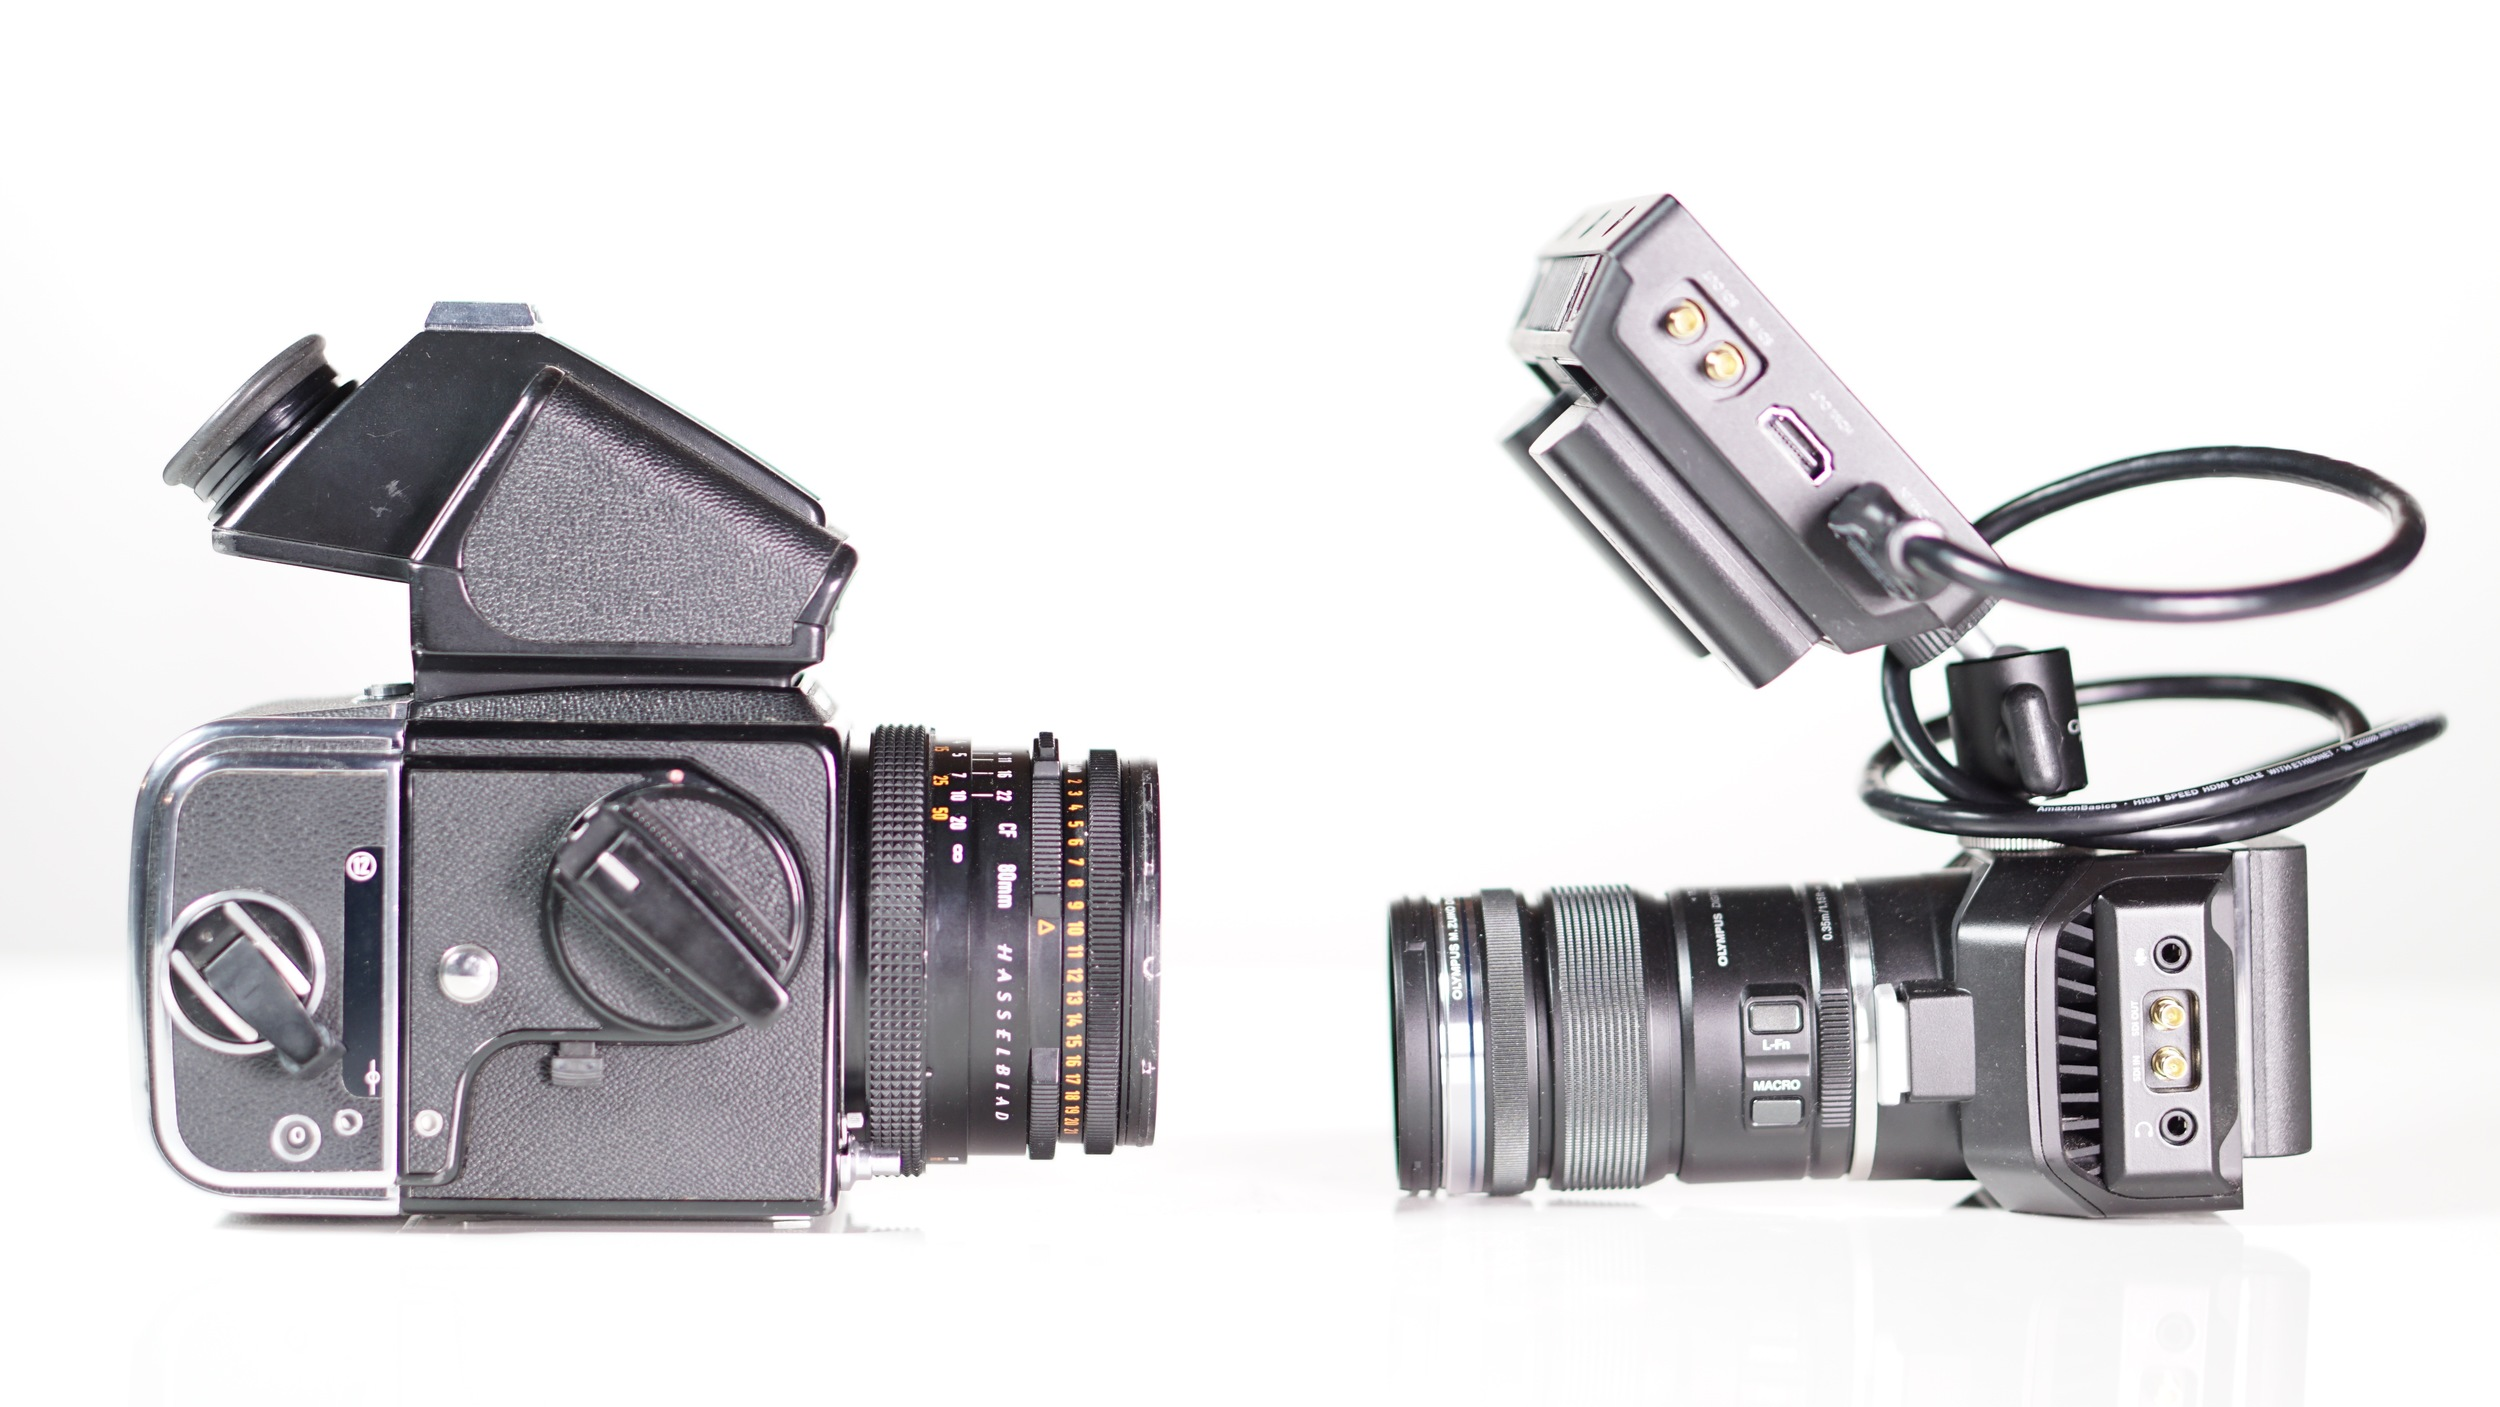 Back To The Future Blackmagic Design S New Micro Studio 4k Is A Mashup Of Their Studio Camera 4k A Gopro Hero And The Legendary Hasselblad 500c And An Indication Of Where